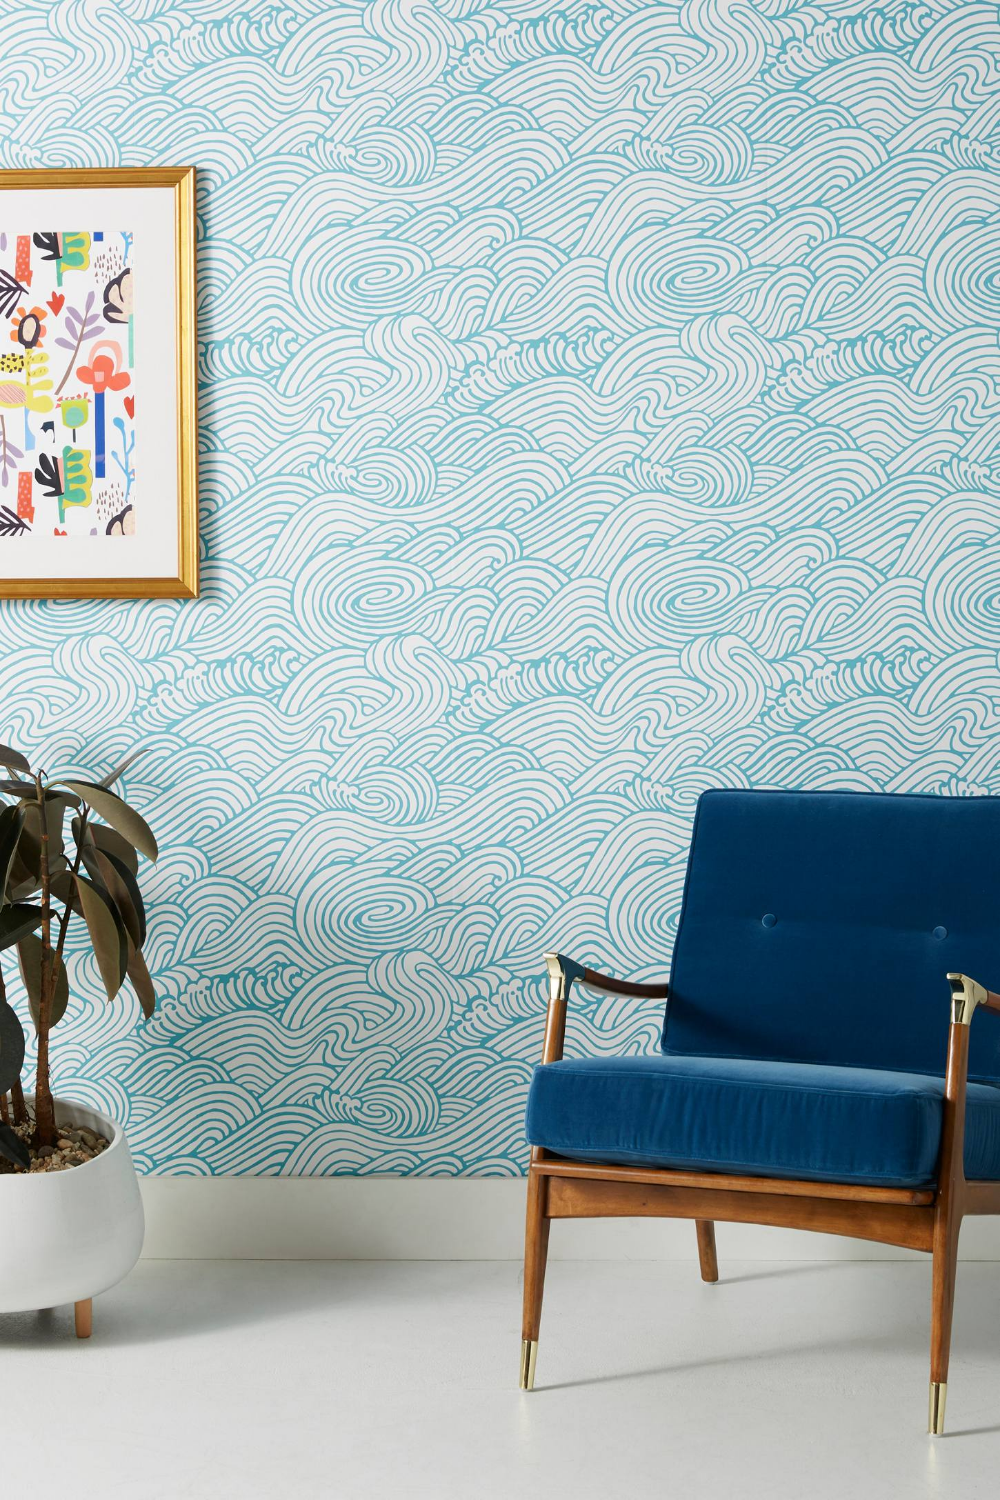 Mare Wave Wallpaper in 2020 Waves wallpaper, Home decor